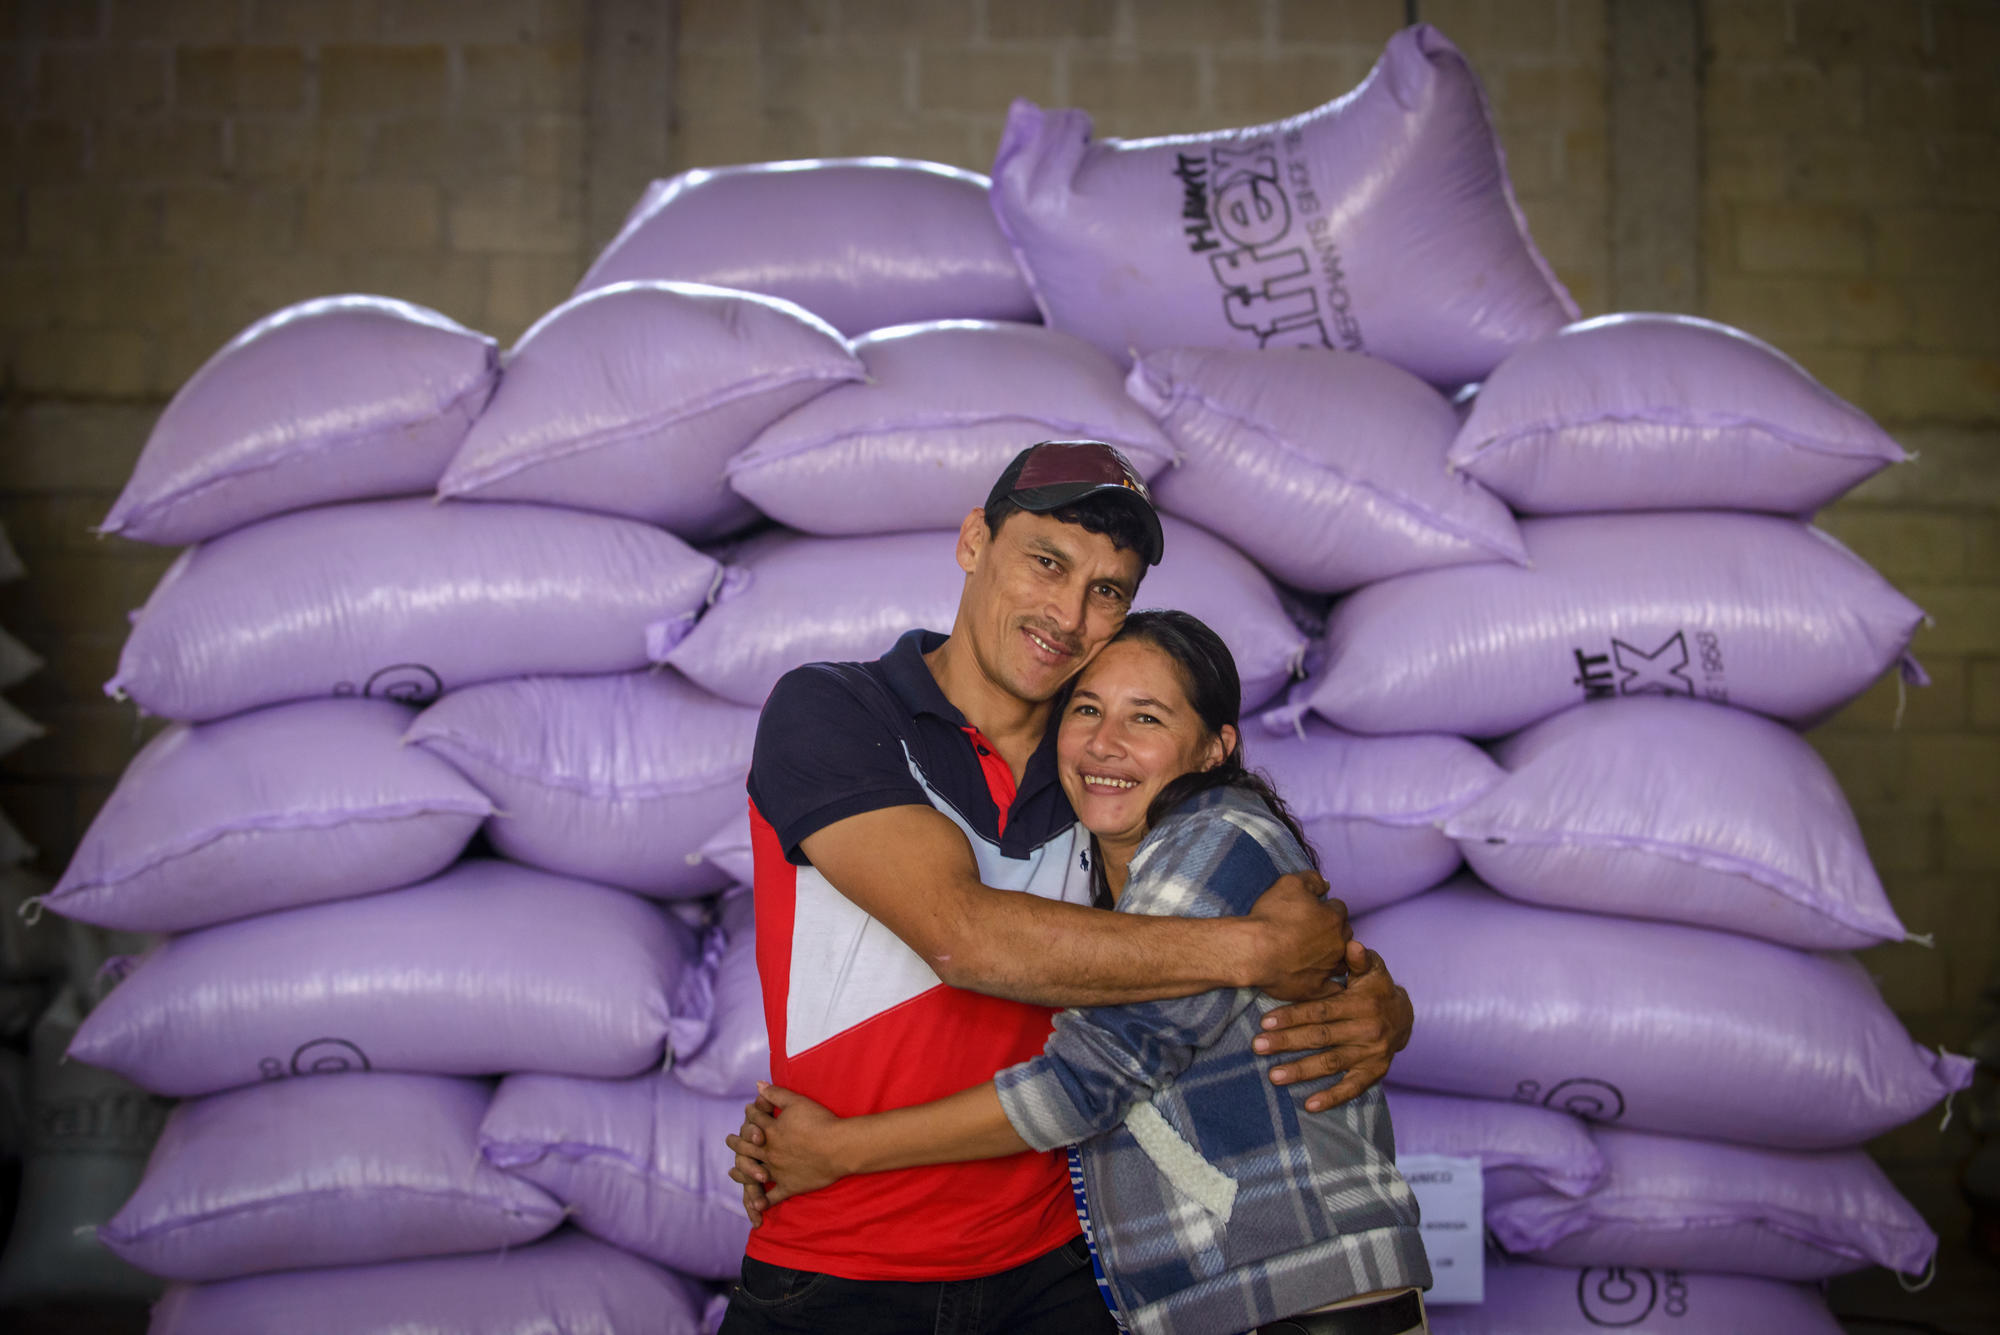 couple hugging each other and behind them are bags of roasted coffee beans